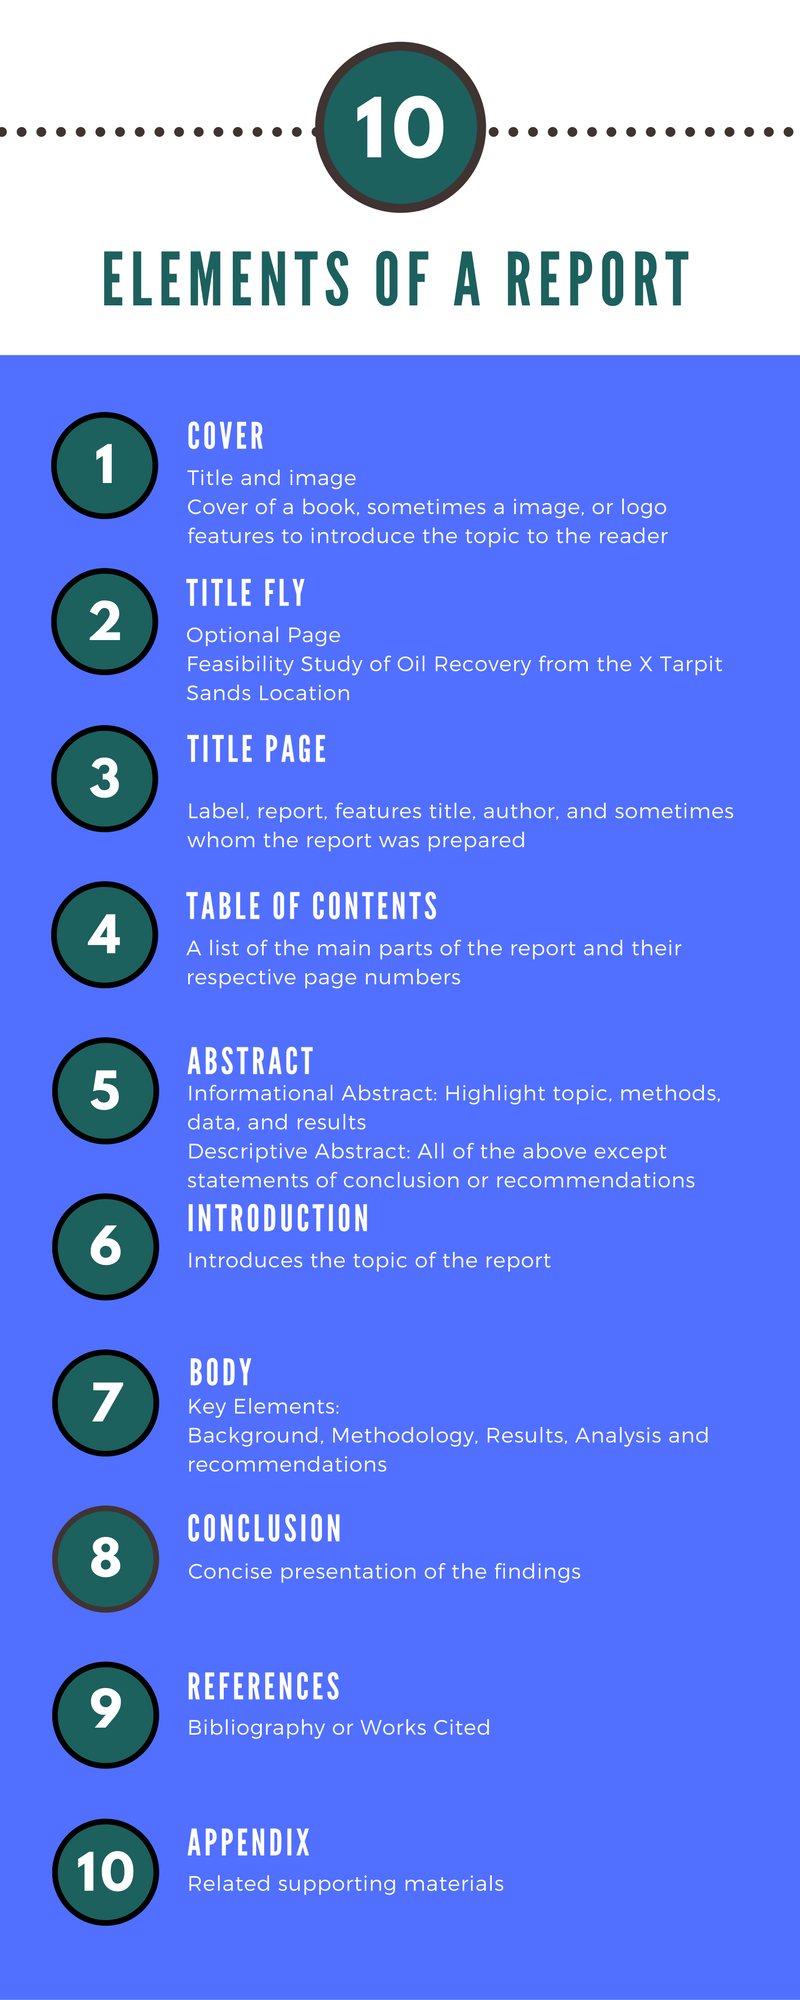 Elements of a report: cover, title fly, title page, table of contents, abstract, introduction, body, conclusion, references, appendix